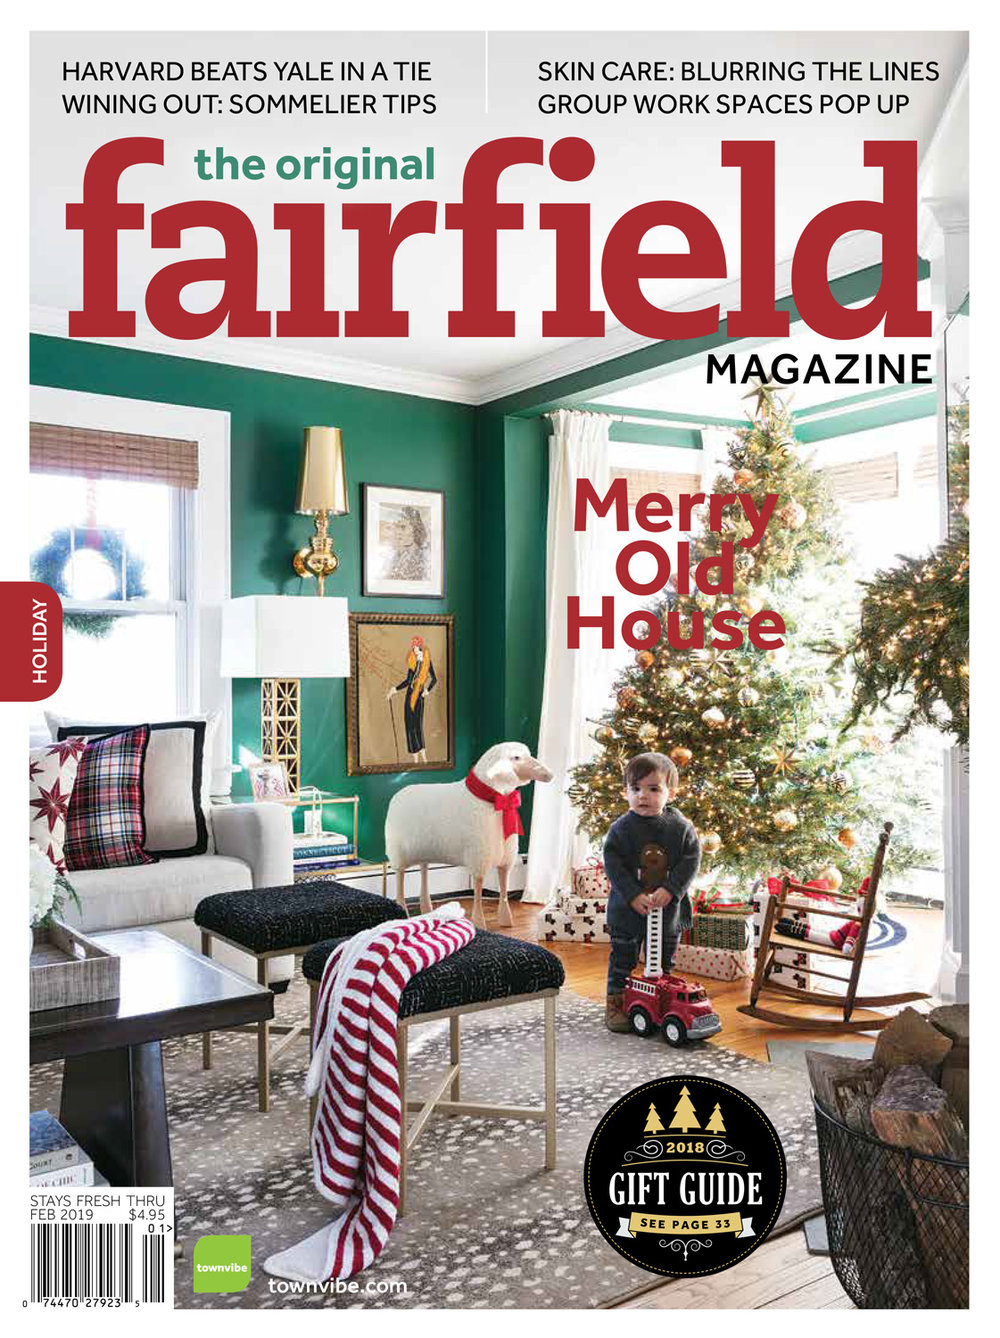 Fairfield Magazine December 2018/January 2019